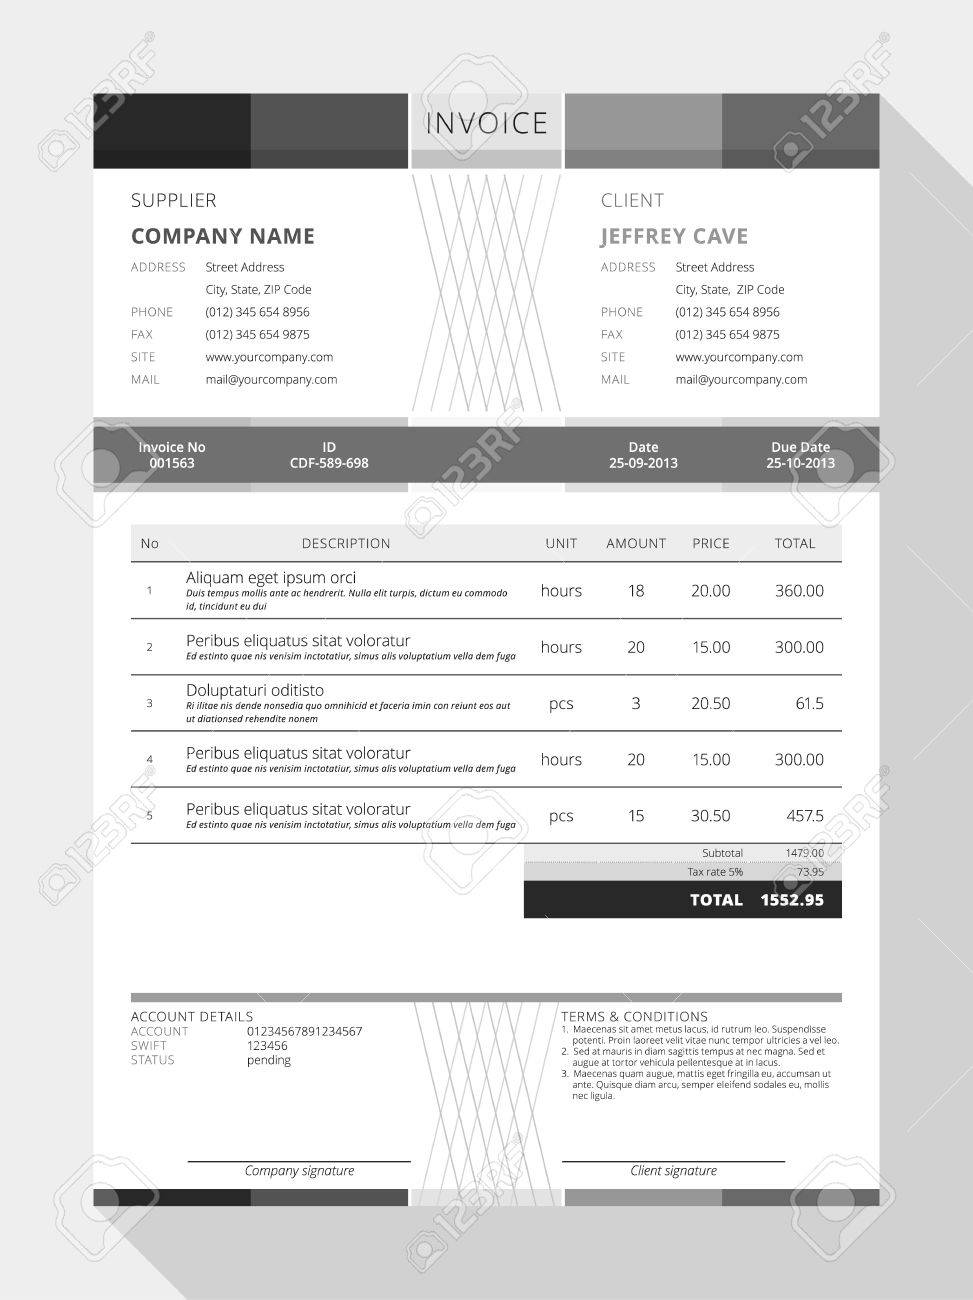 Picnictoimpeachus  Splendid Design An Invoice  Professional Graphic Design Invoice  With Gorgeous Vector Customizable Invoice Form Template Design Vector   Design An Invoice With Astounding What Is A Proforma Invoice Also Sample Invoices In Addition What Is An Invoice Number And Invoice  Go As Well As Ebay Invoice Additionally Invoice Template Excel From Happytomco With Picnictoimpeachus  Gorgeous Design An Invoice  Professional Graphic Design Invoice  With Astounding Vector Customizable Invoice Form Template Design Vector   Design An Invoice And Splendid What Is A Proforma Invoice Also Sample Invoices In Addition What Is An Invoice Number From Happytomco